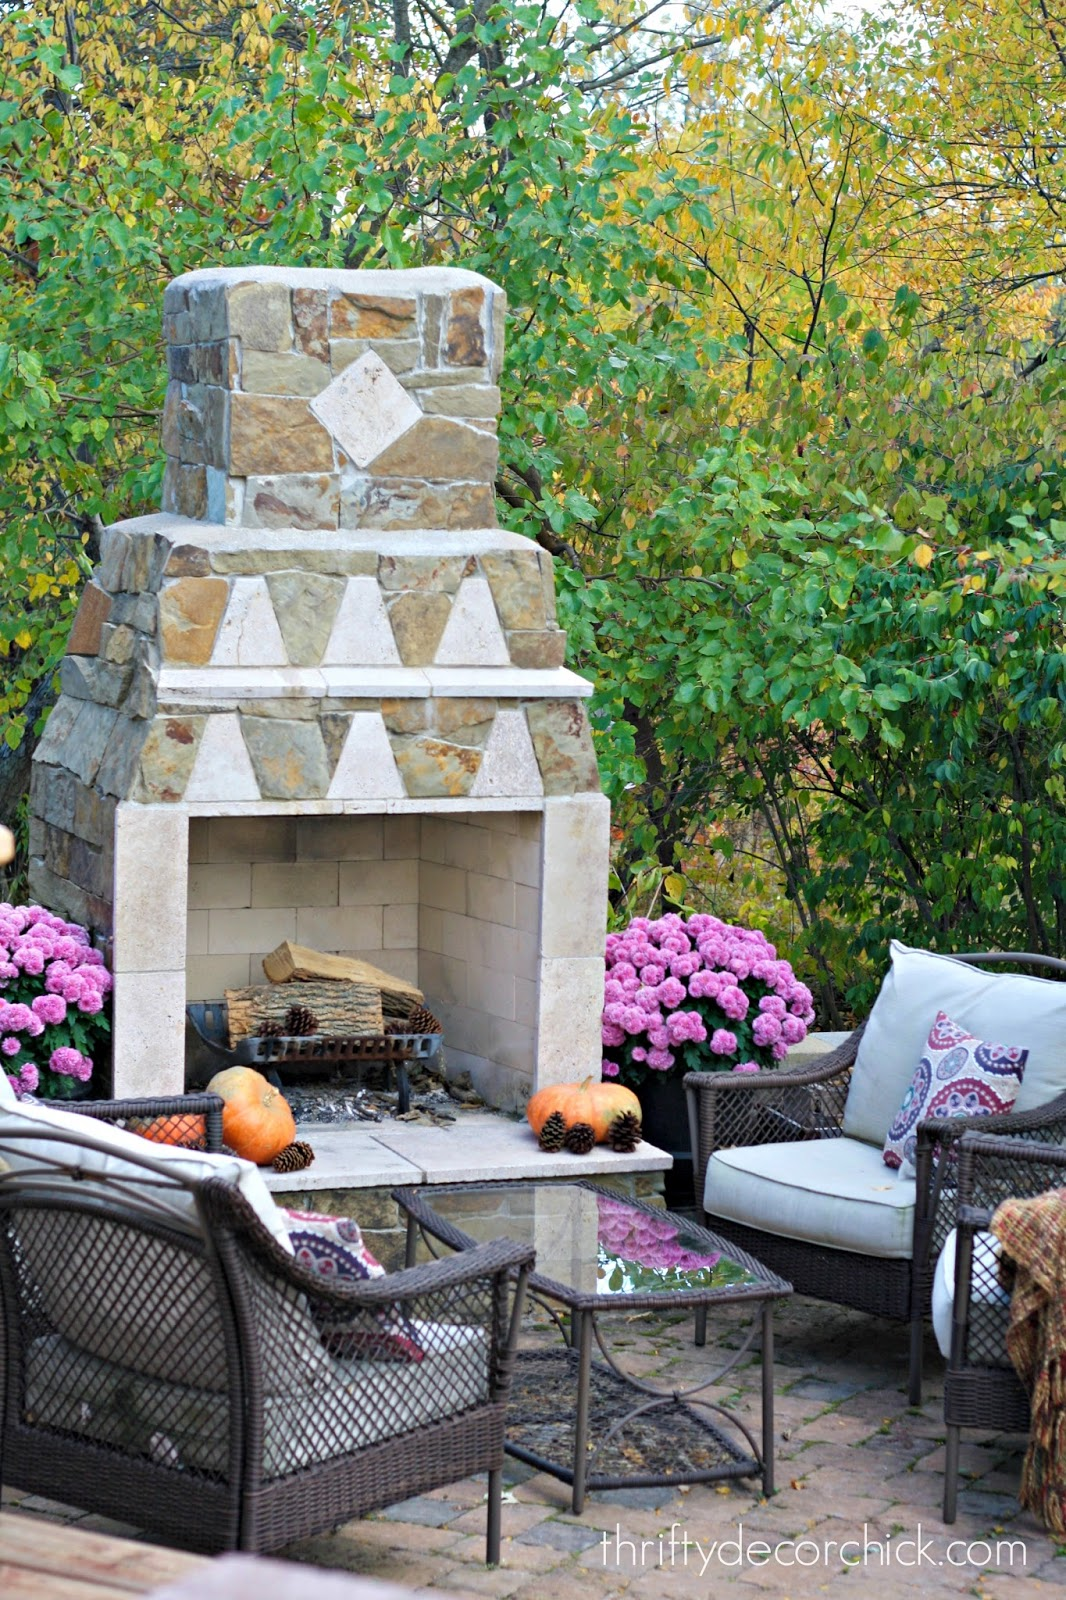 Best of Fall: Decorating Ideas from Thrifty Decor Chick